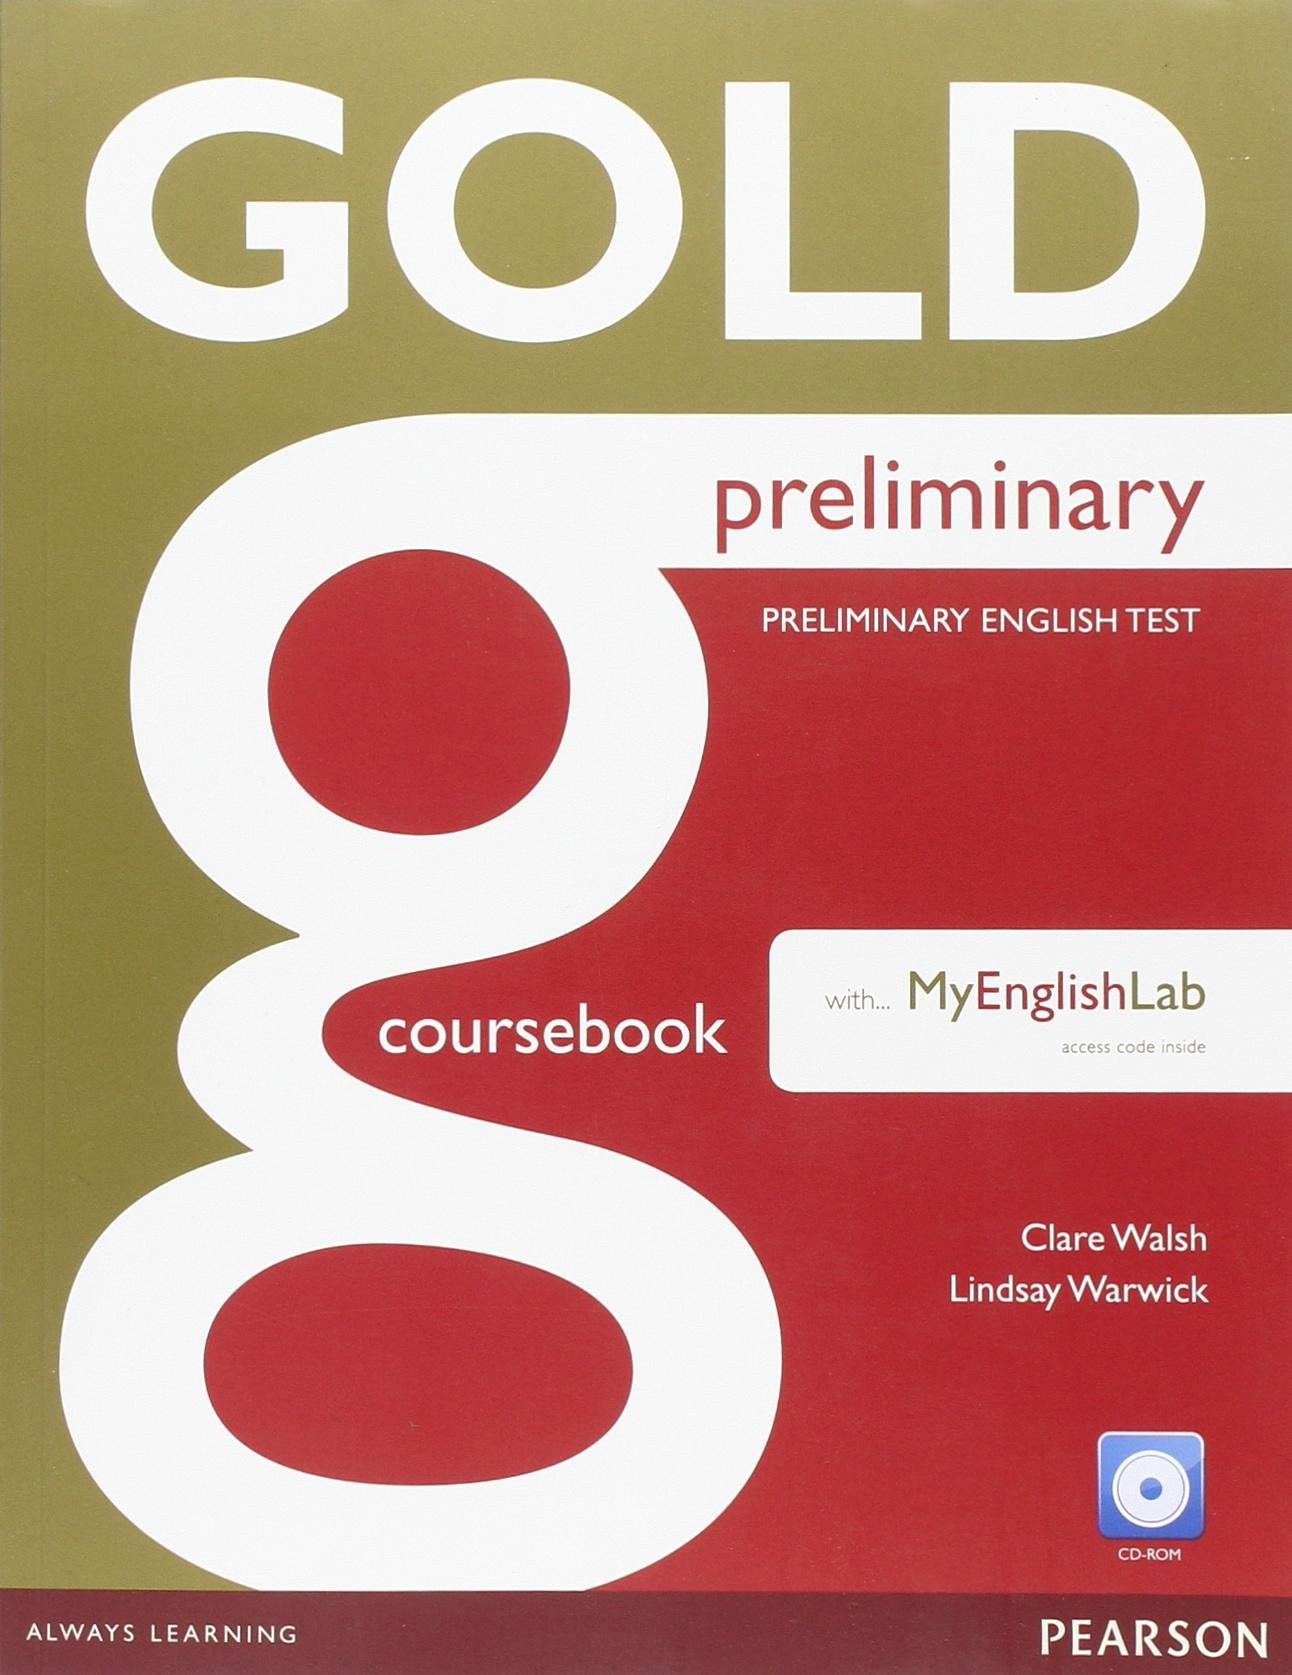 Gold NEd Preliminary Coursebook with AudioCD-ROM+ МуEnglishLab